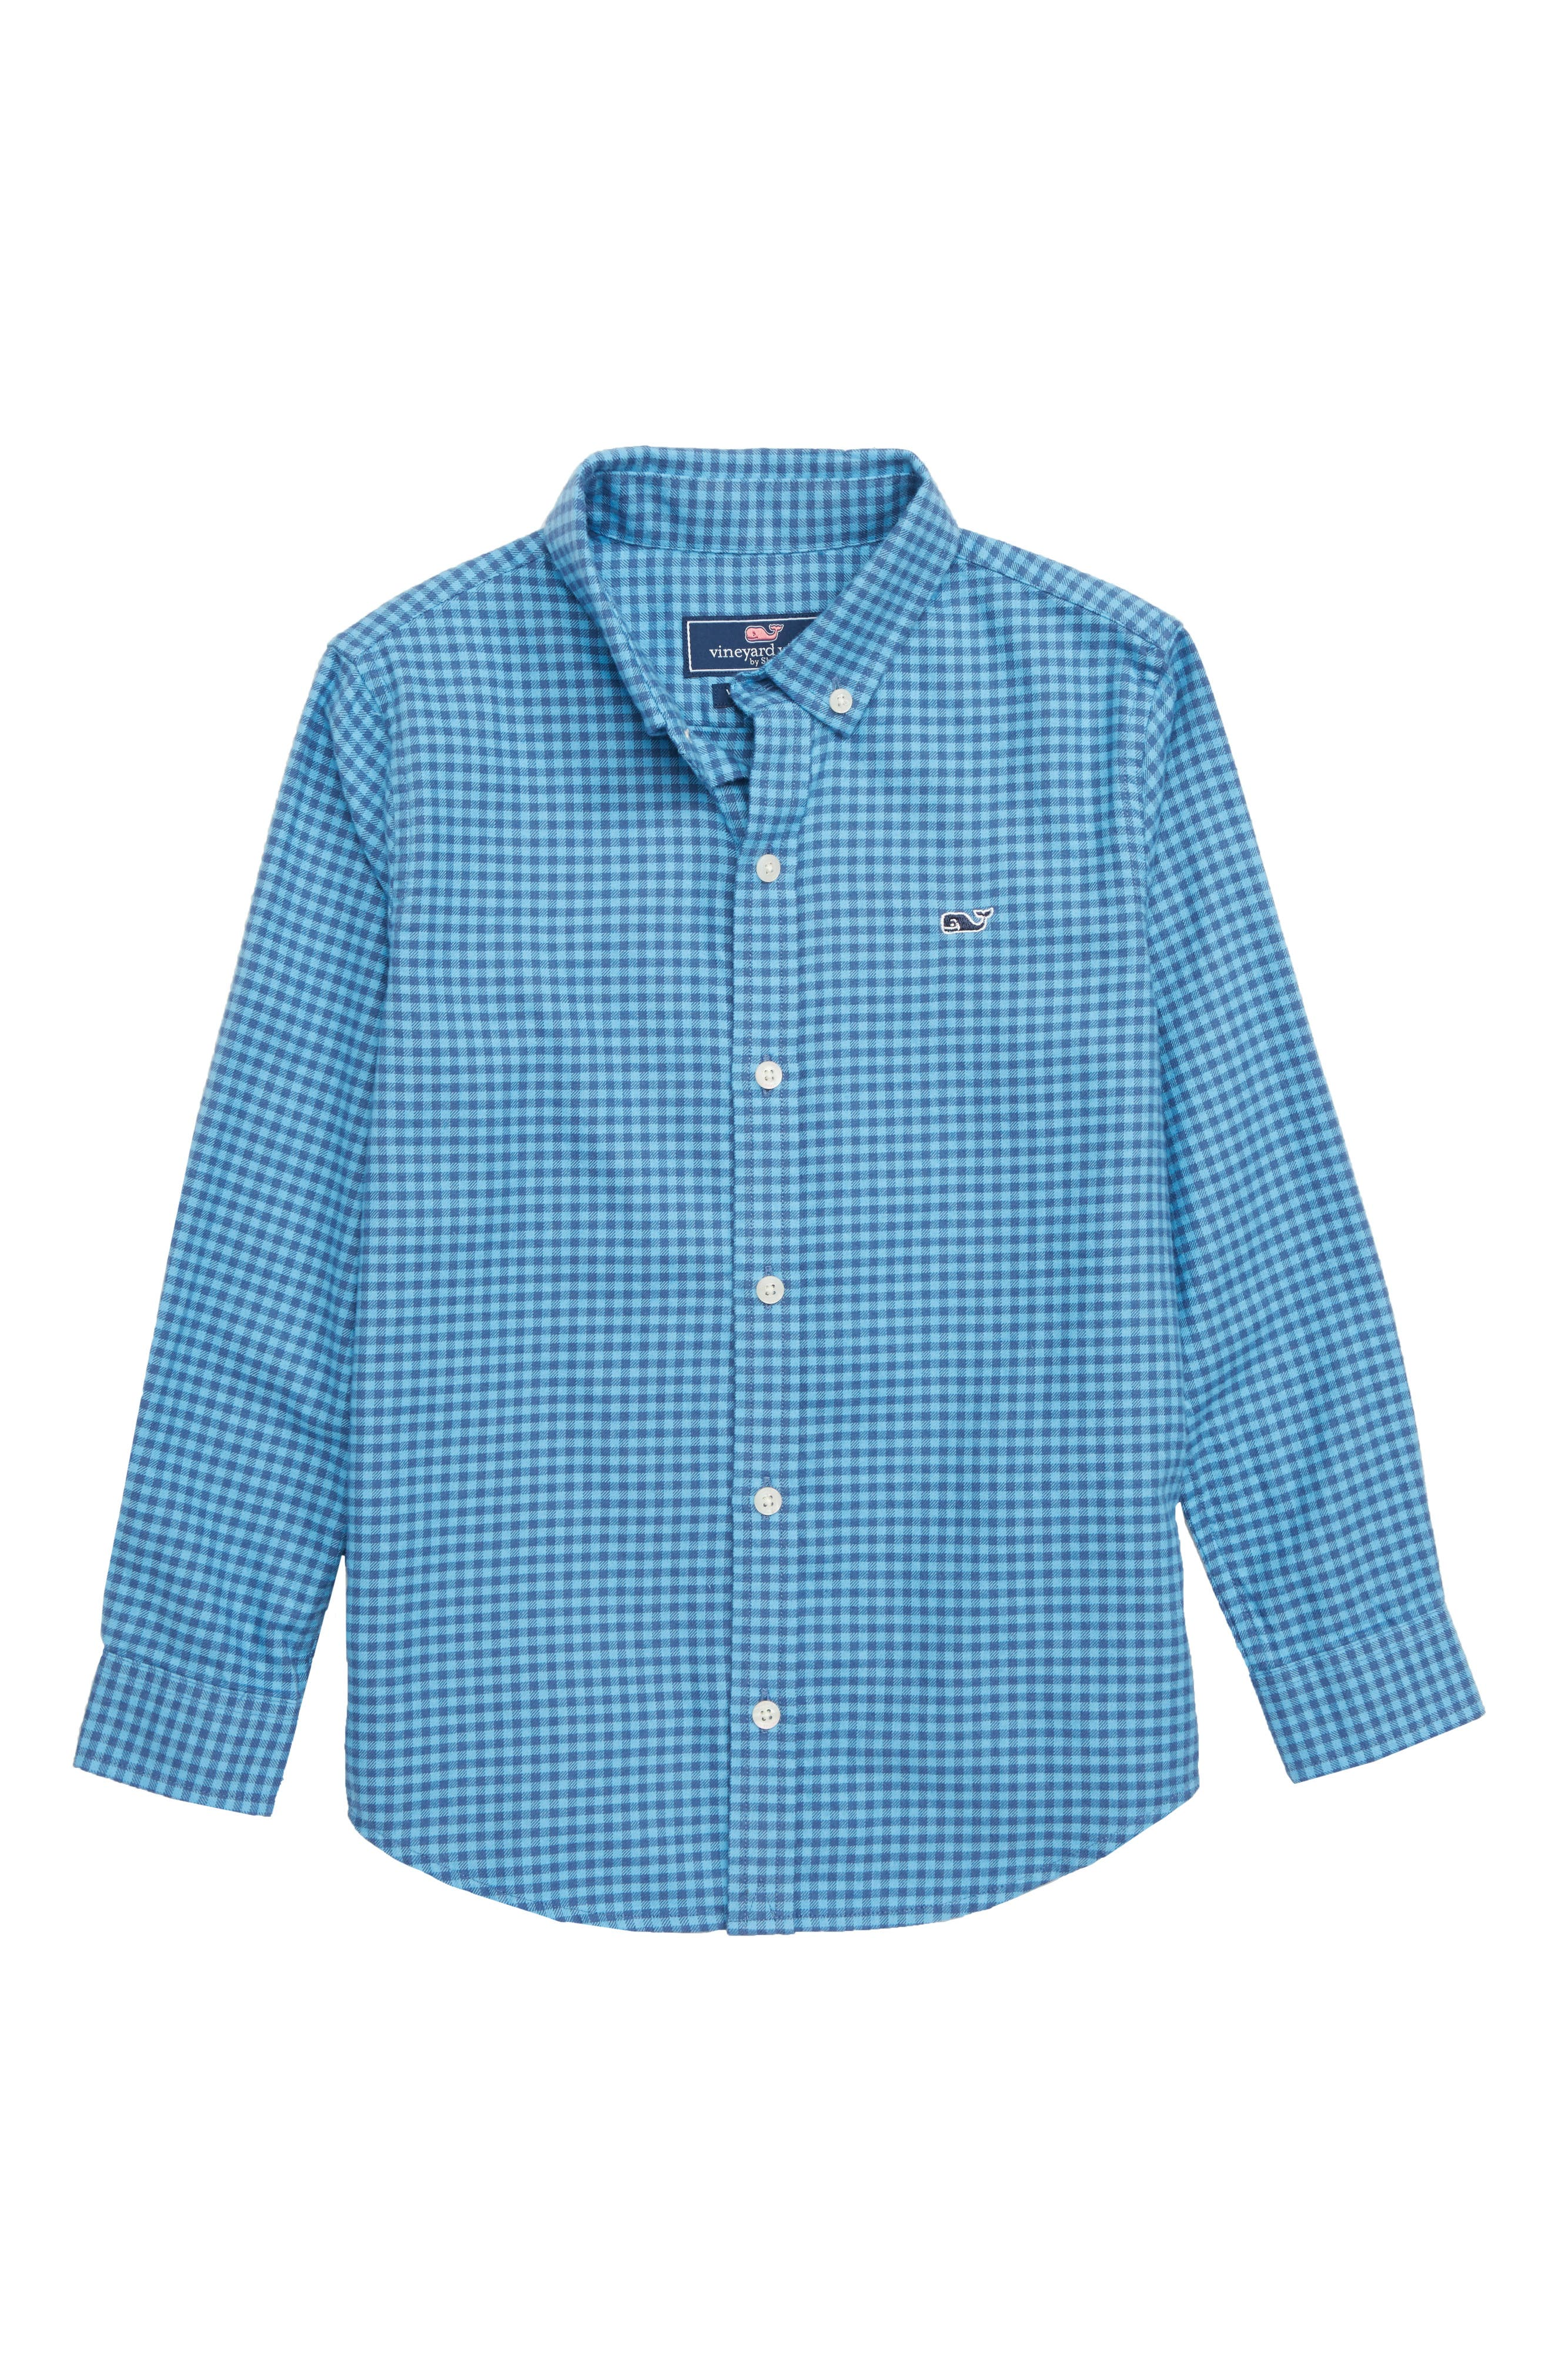 Tradewinds Flannel Whale Shirt,                         Main,                         color, OCEAN BREEZE